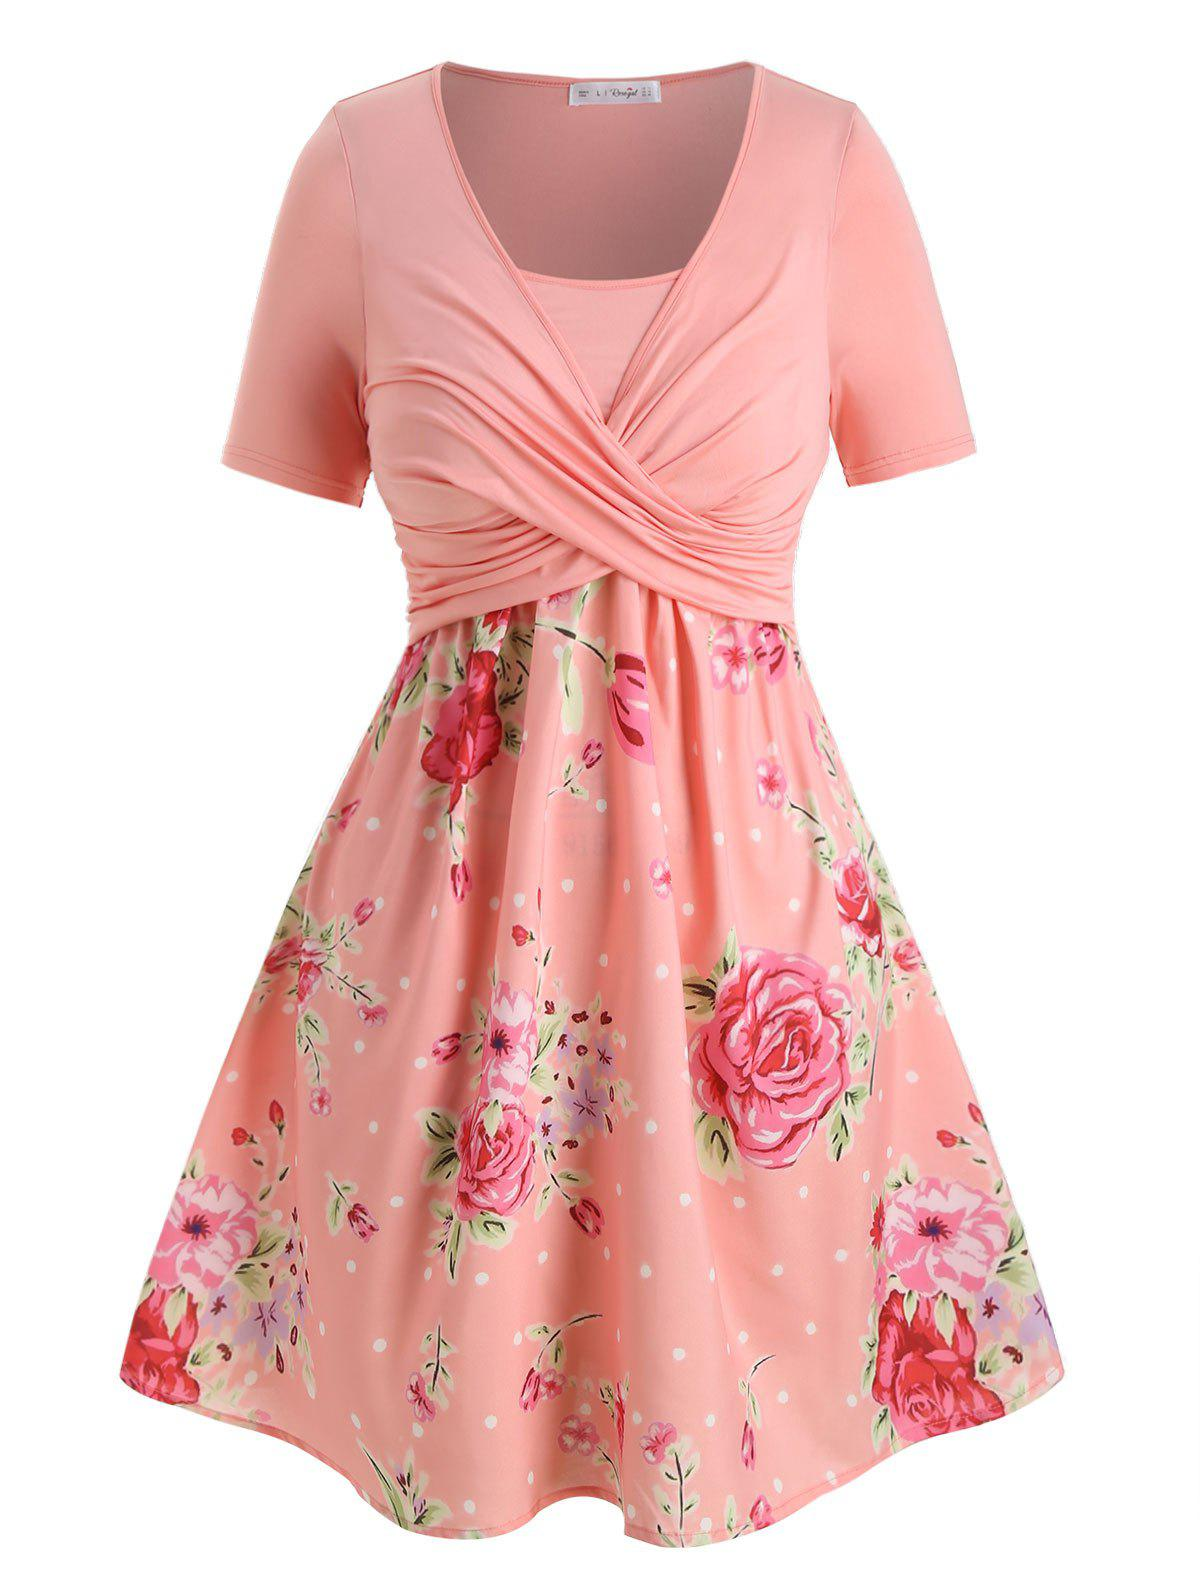 Plus Size Crossover Floral Print Dress - PINK 5X